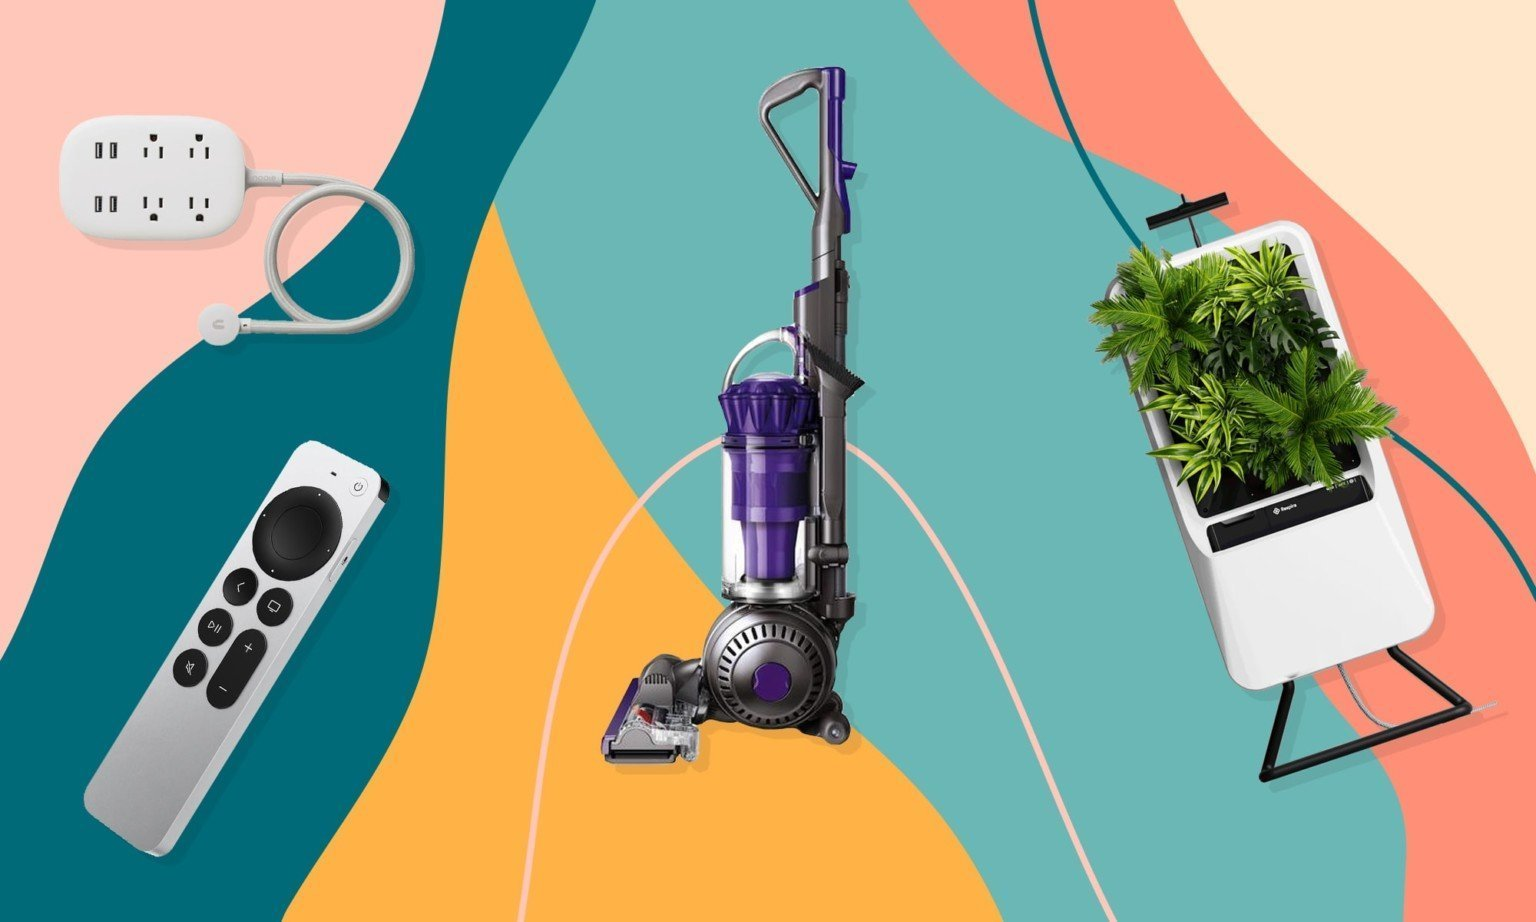 The ultimate consumer tech gadgets guide of 2021